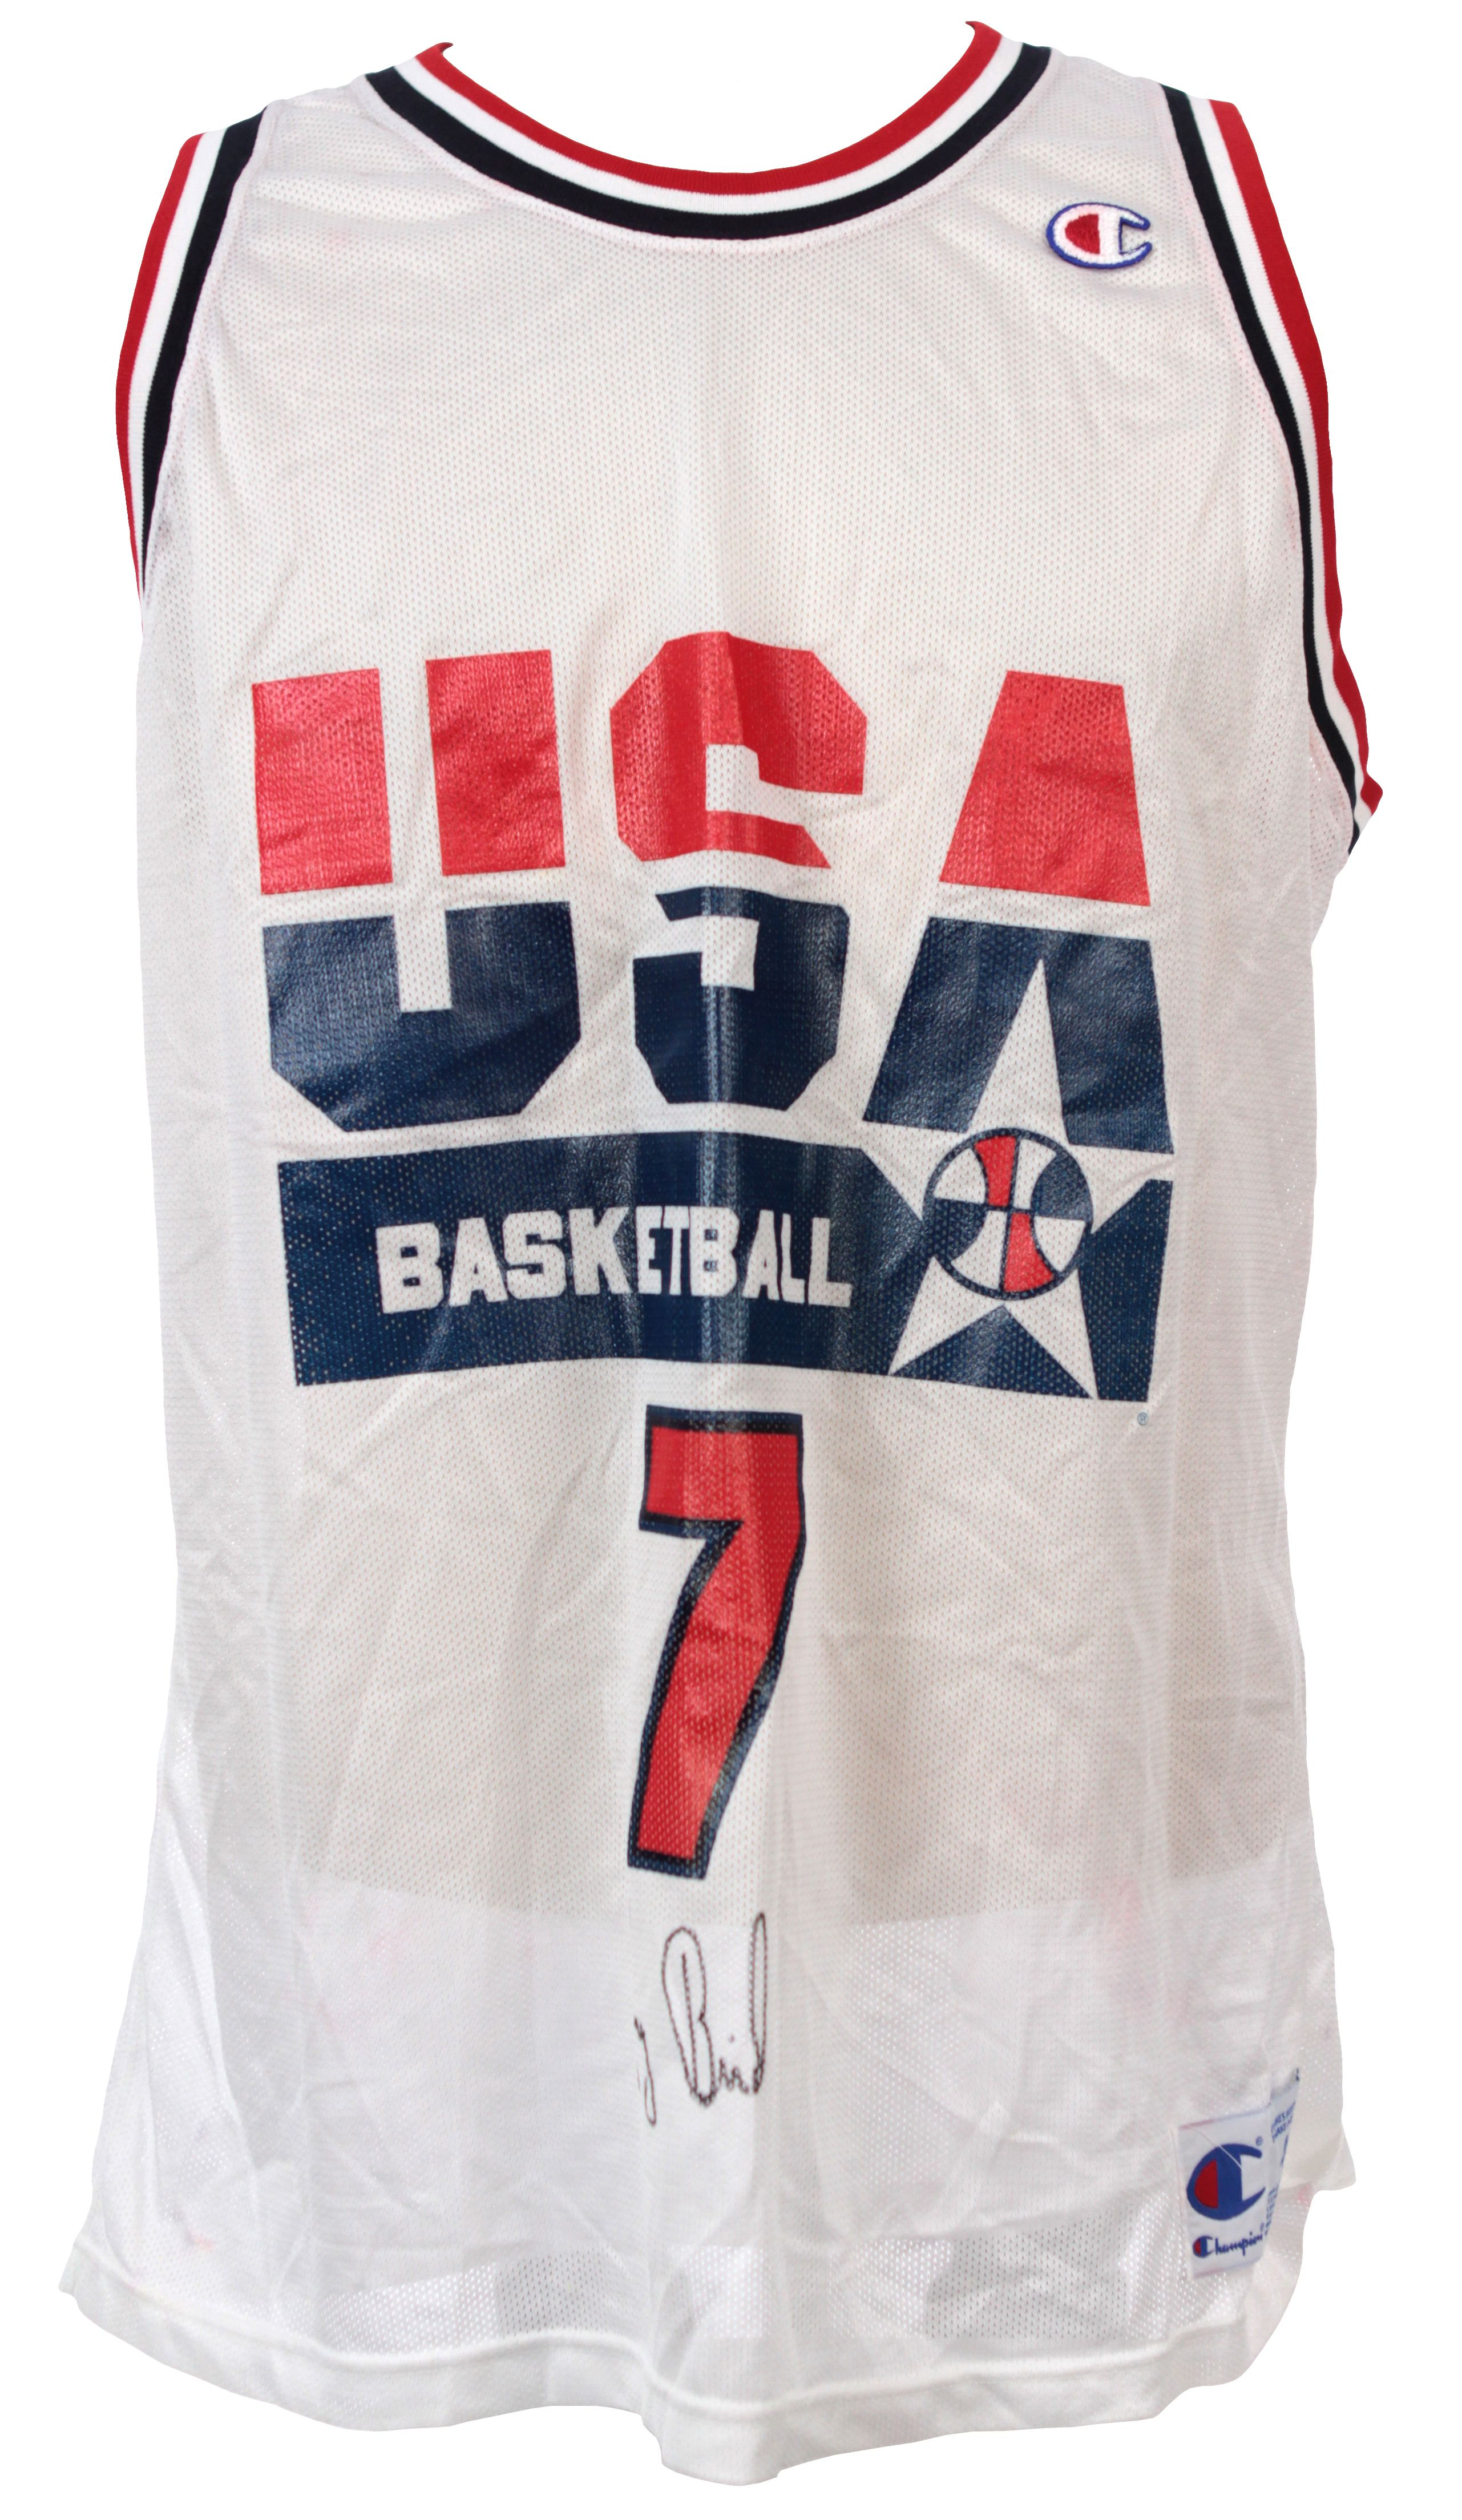 new product e80aa 349a2 Lot Detail - 1992 Larry Bird Dream Team Signed Replica ...